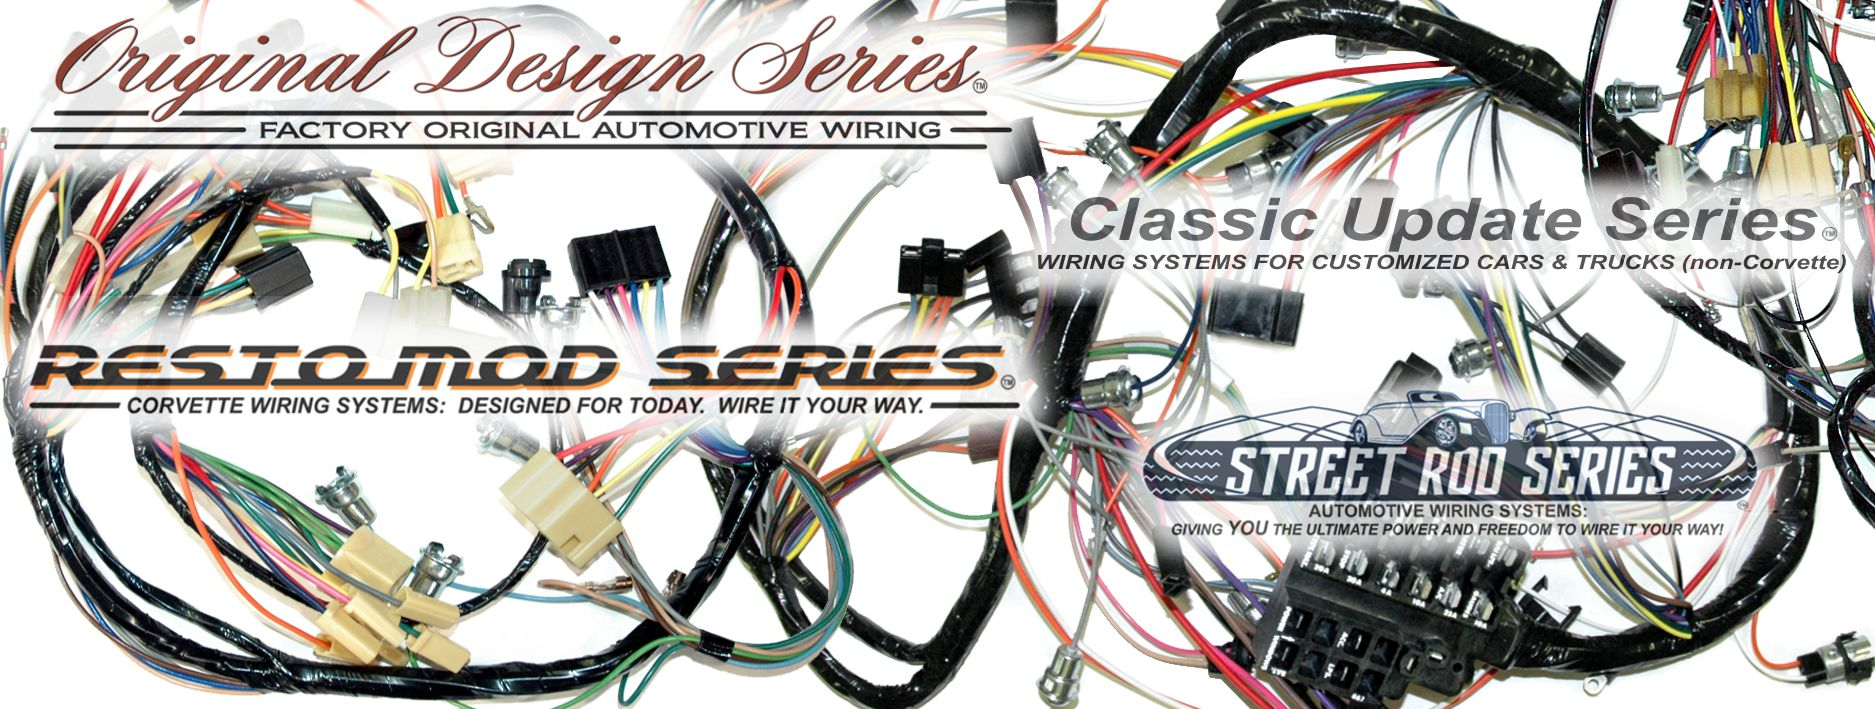 Stupendous Exact Oem Reproduction Wiring Harnesses And Restomod Wiring Systems Wiring Cloud Licukshollocom